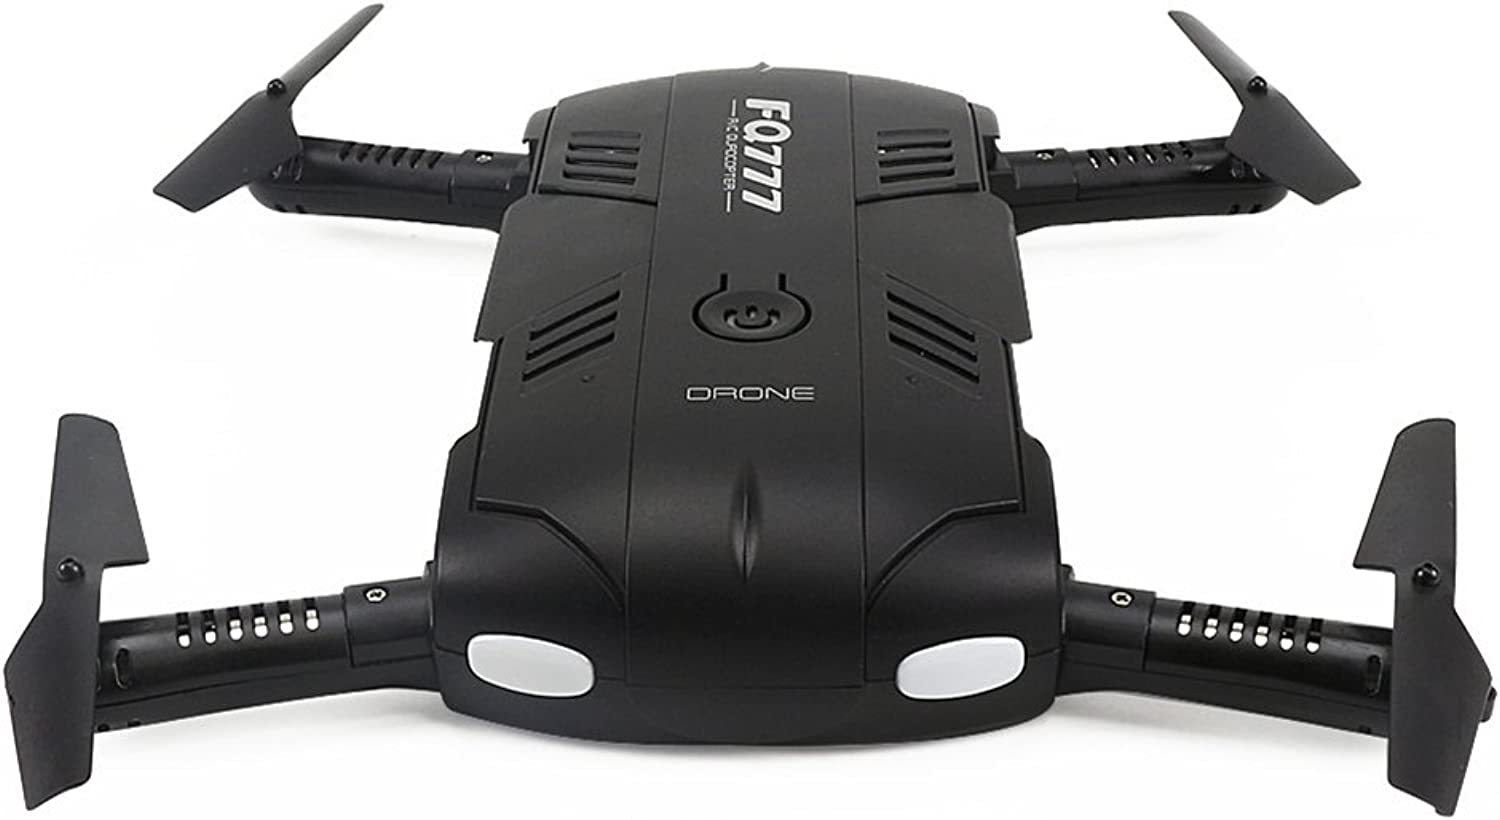 Lanlan Mini Foldable RC Headless WiFi Drone Quadcopter with Lights Altitude Hold Aircraft Toy as Xmas Gifts Black